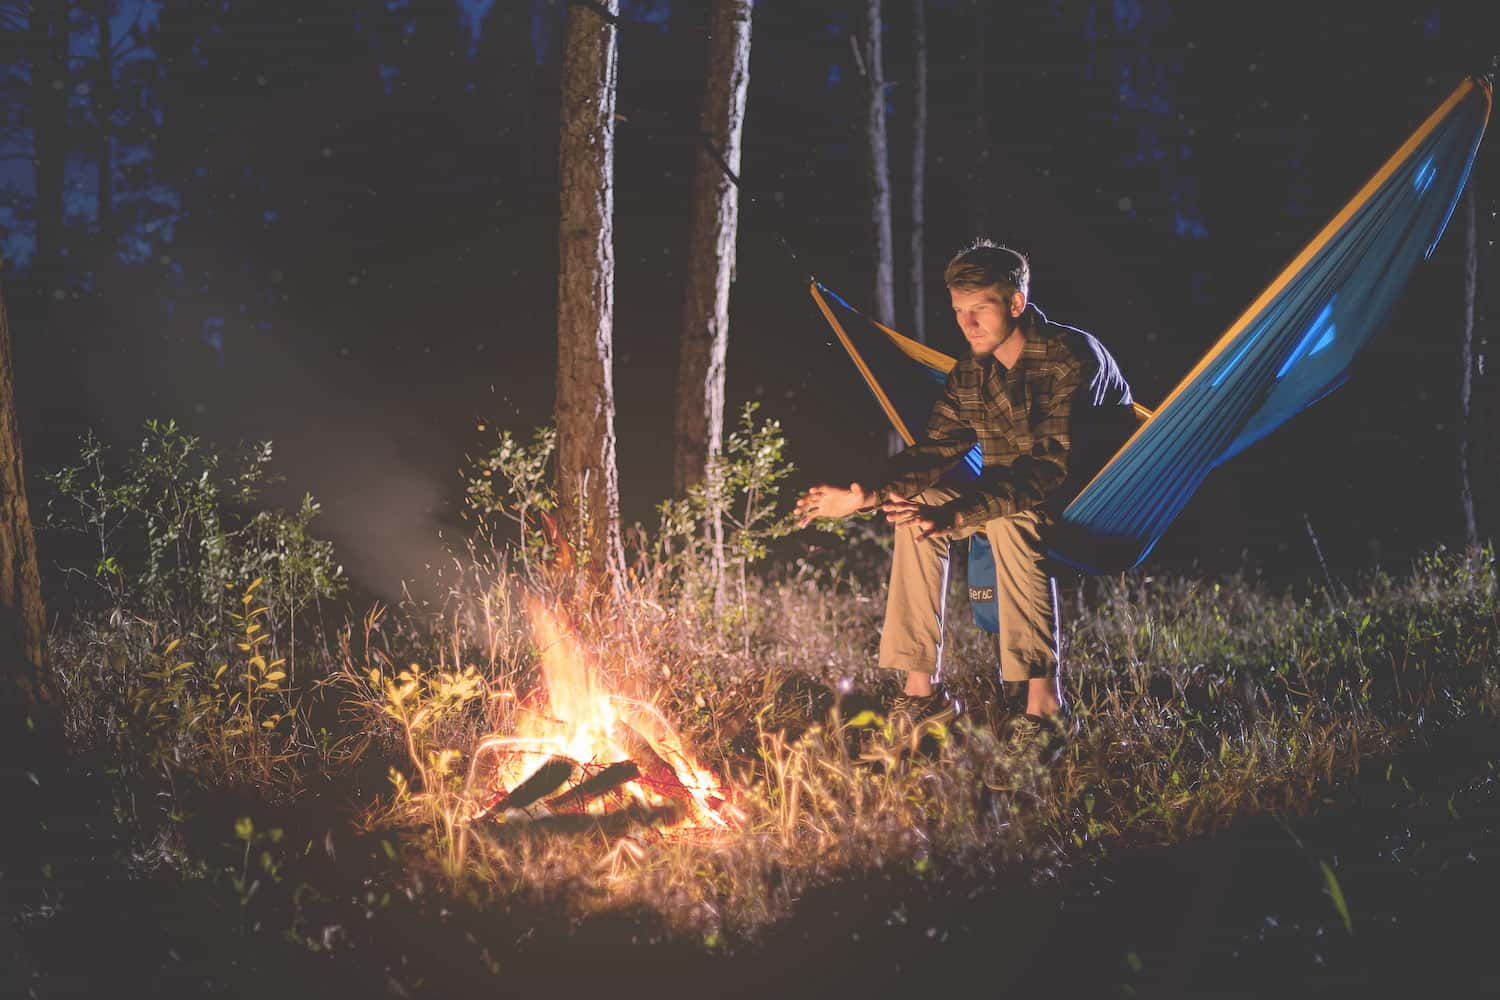 serac ultralight and portable camping hammocks featured image serac sequoia xl hammock in the woods